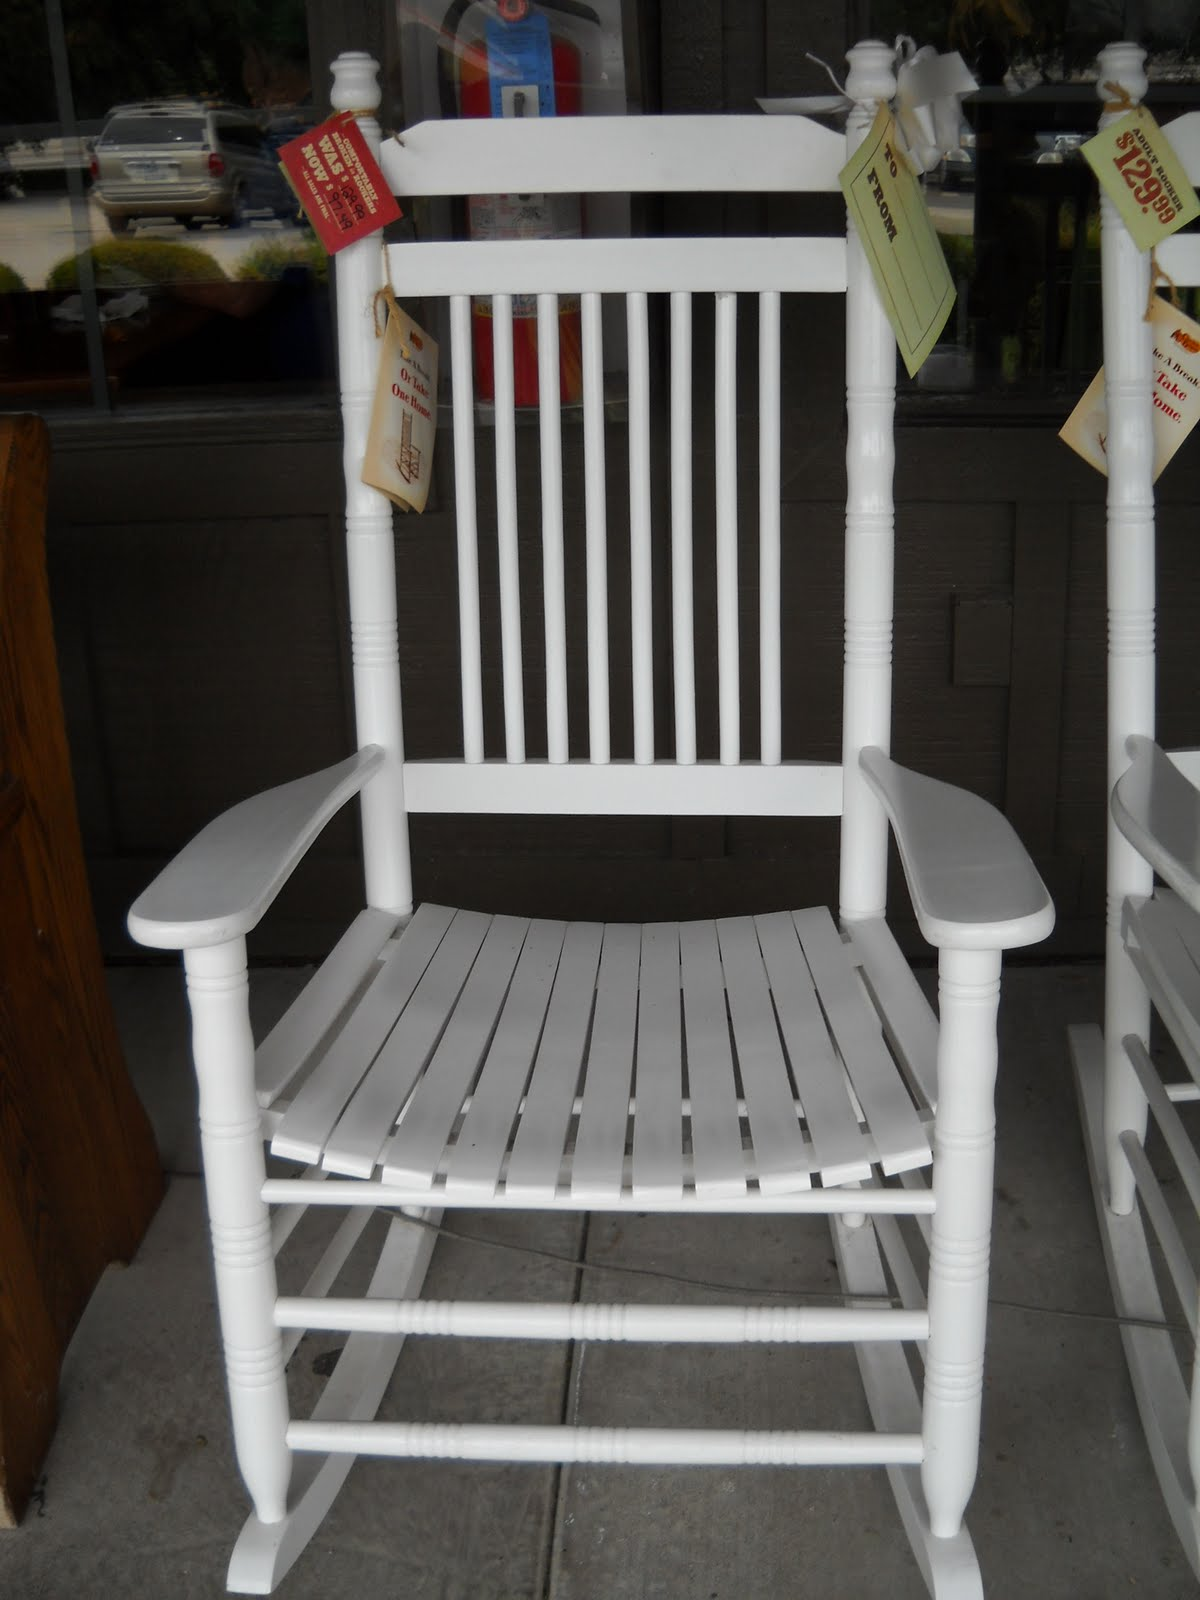 Find great deals on eBay for cracker barrel rocking chair. Shop with confidence.